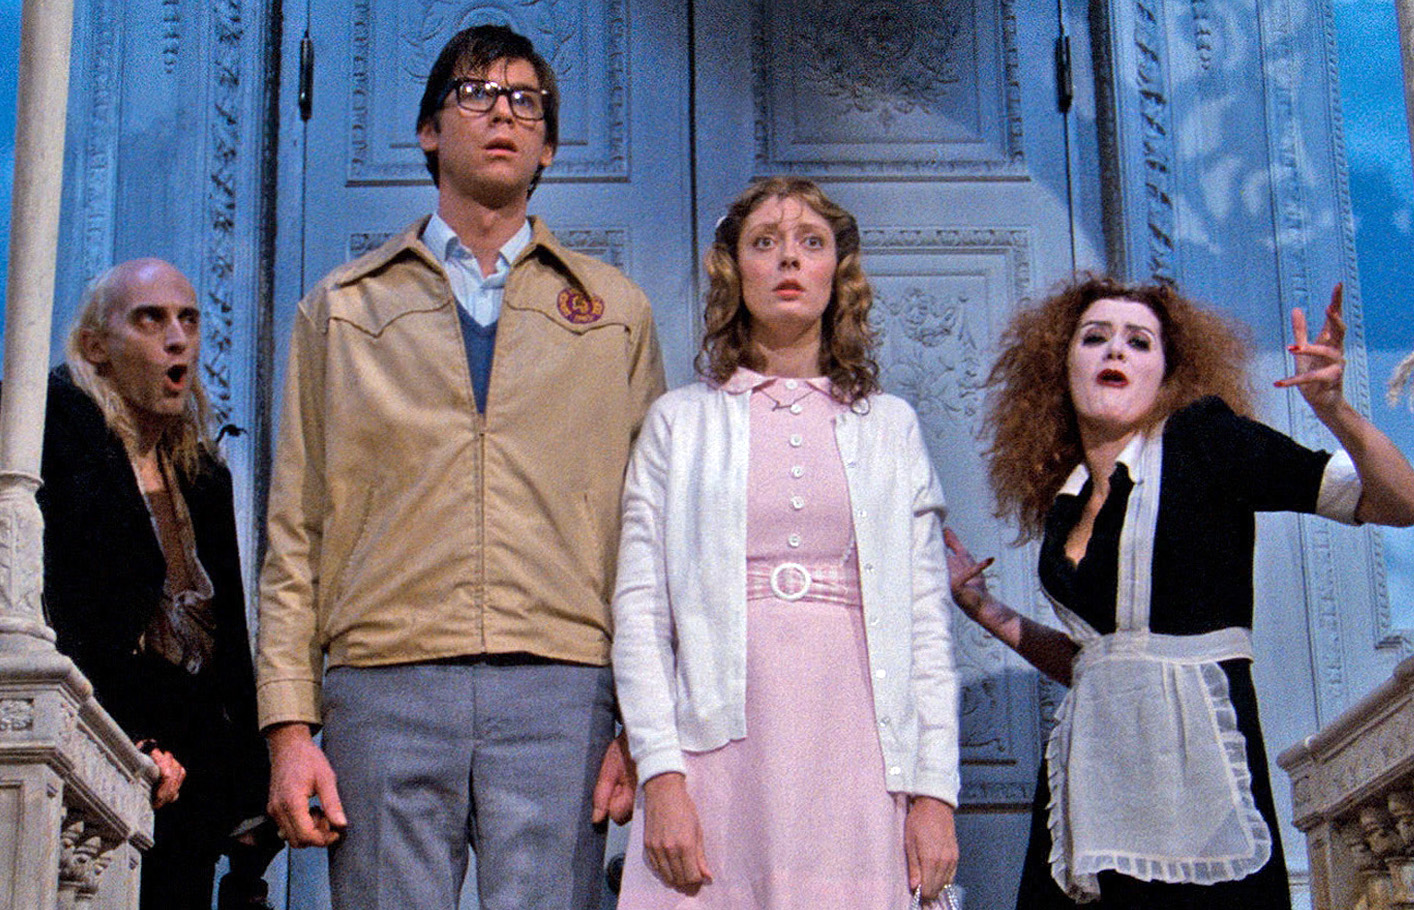 Newlywed innocents Brad and Janet Majors (Barry Bostwick and Susan Sarandon) (c) enter the castle flanked by the retainers Riff-Raff (the original play's creator Richard O'Brien) (l) and Magenta (Patricia Quinn) (r) in The Rocky Horror Picture Show (1975)